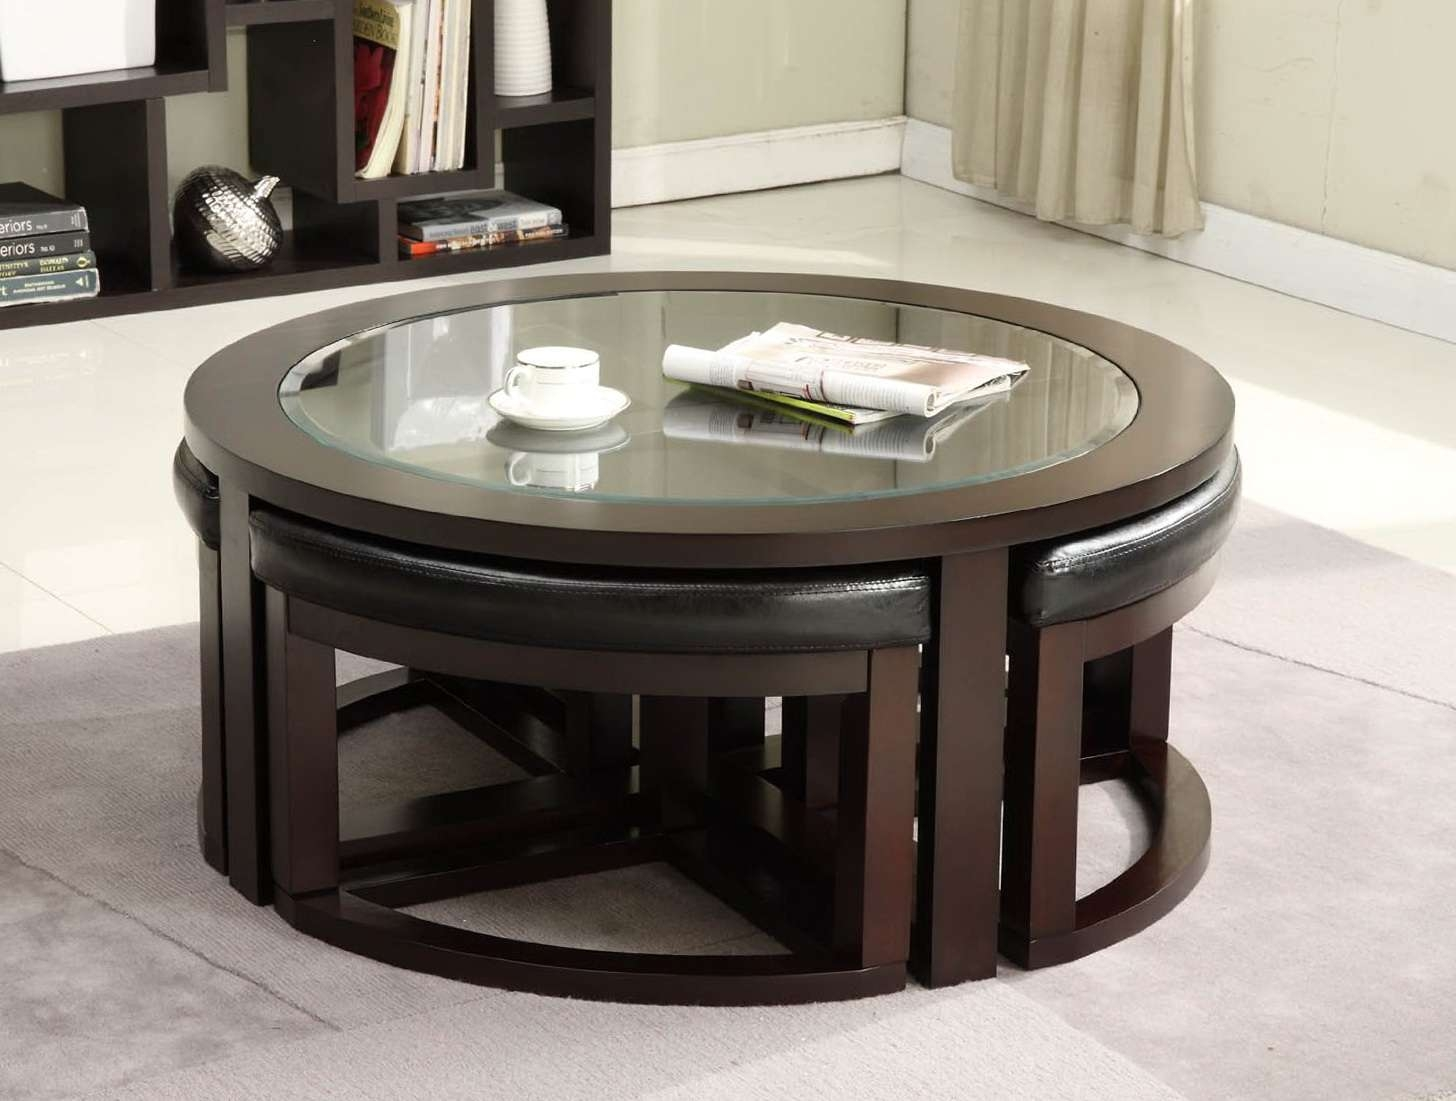 Coffee Tables : Splendid Round Coffee Table Ottomans Underneath Regarding Most Recent Coffee Tables With Seating And Storage (View 11 of 20)